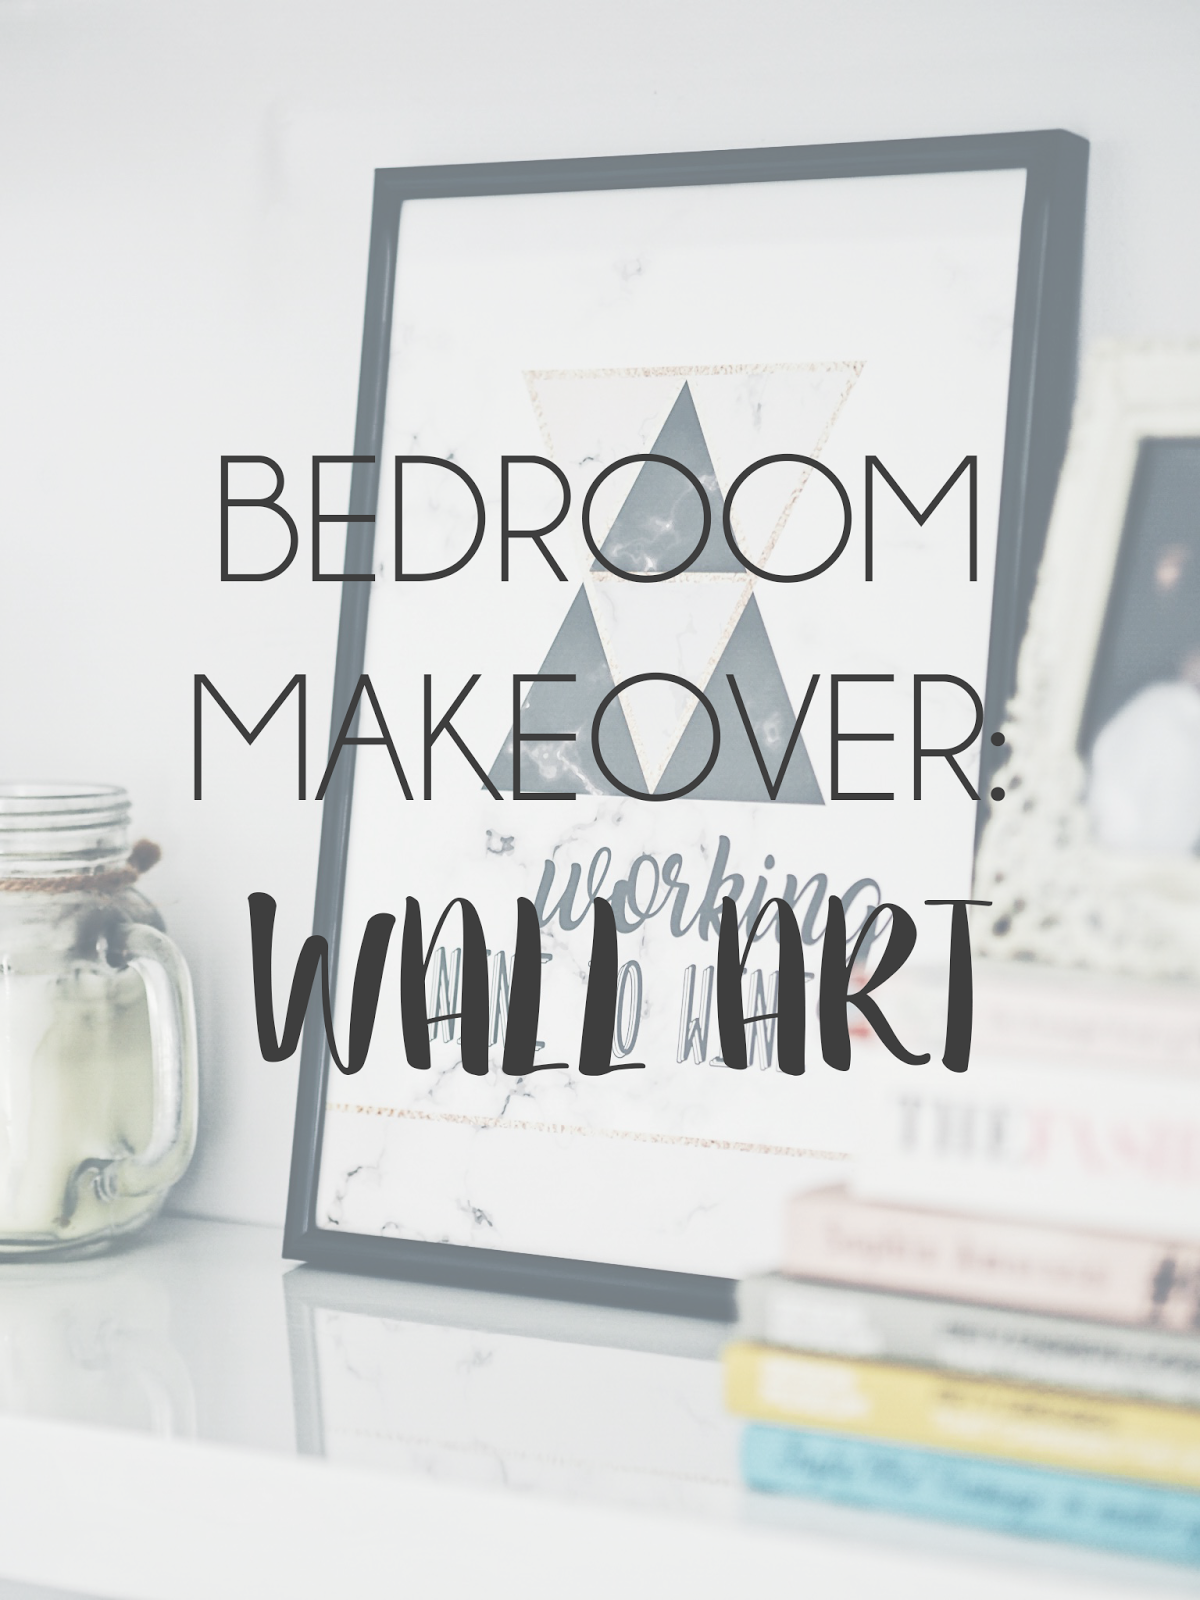 Bedroom Makeover: Wall Art